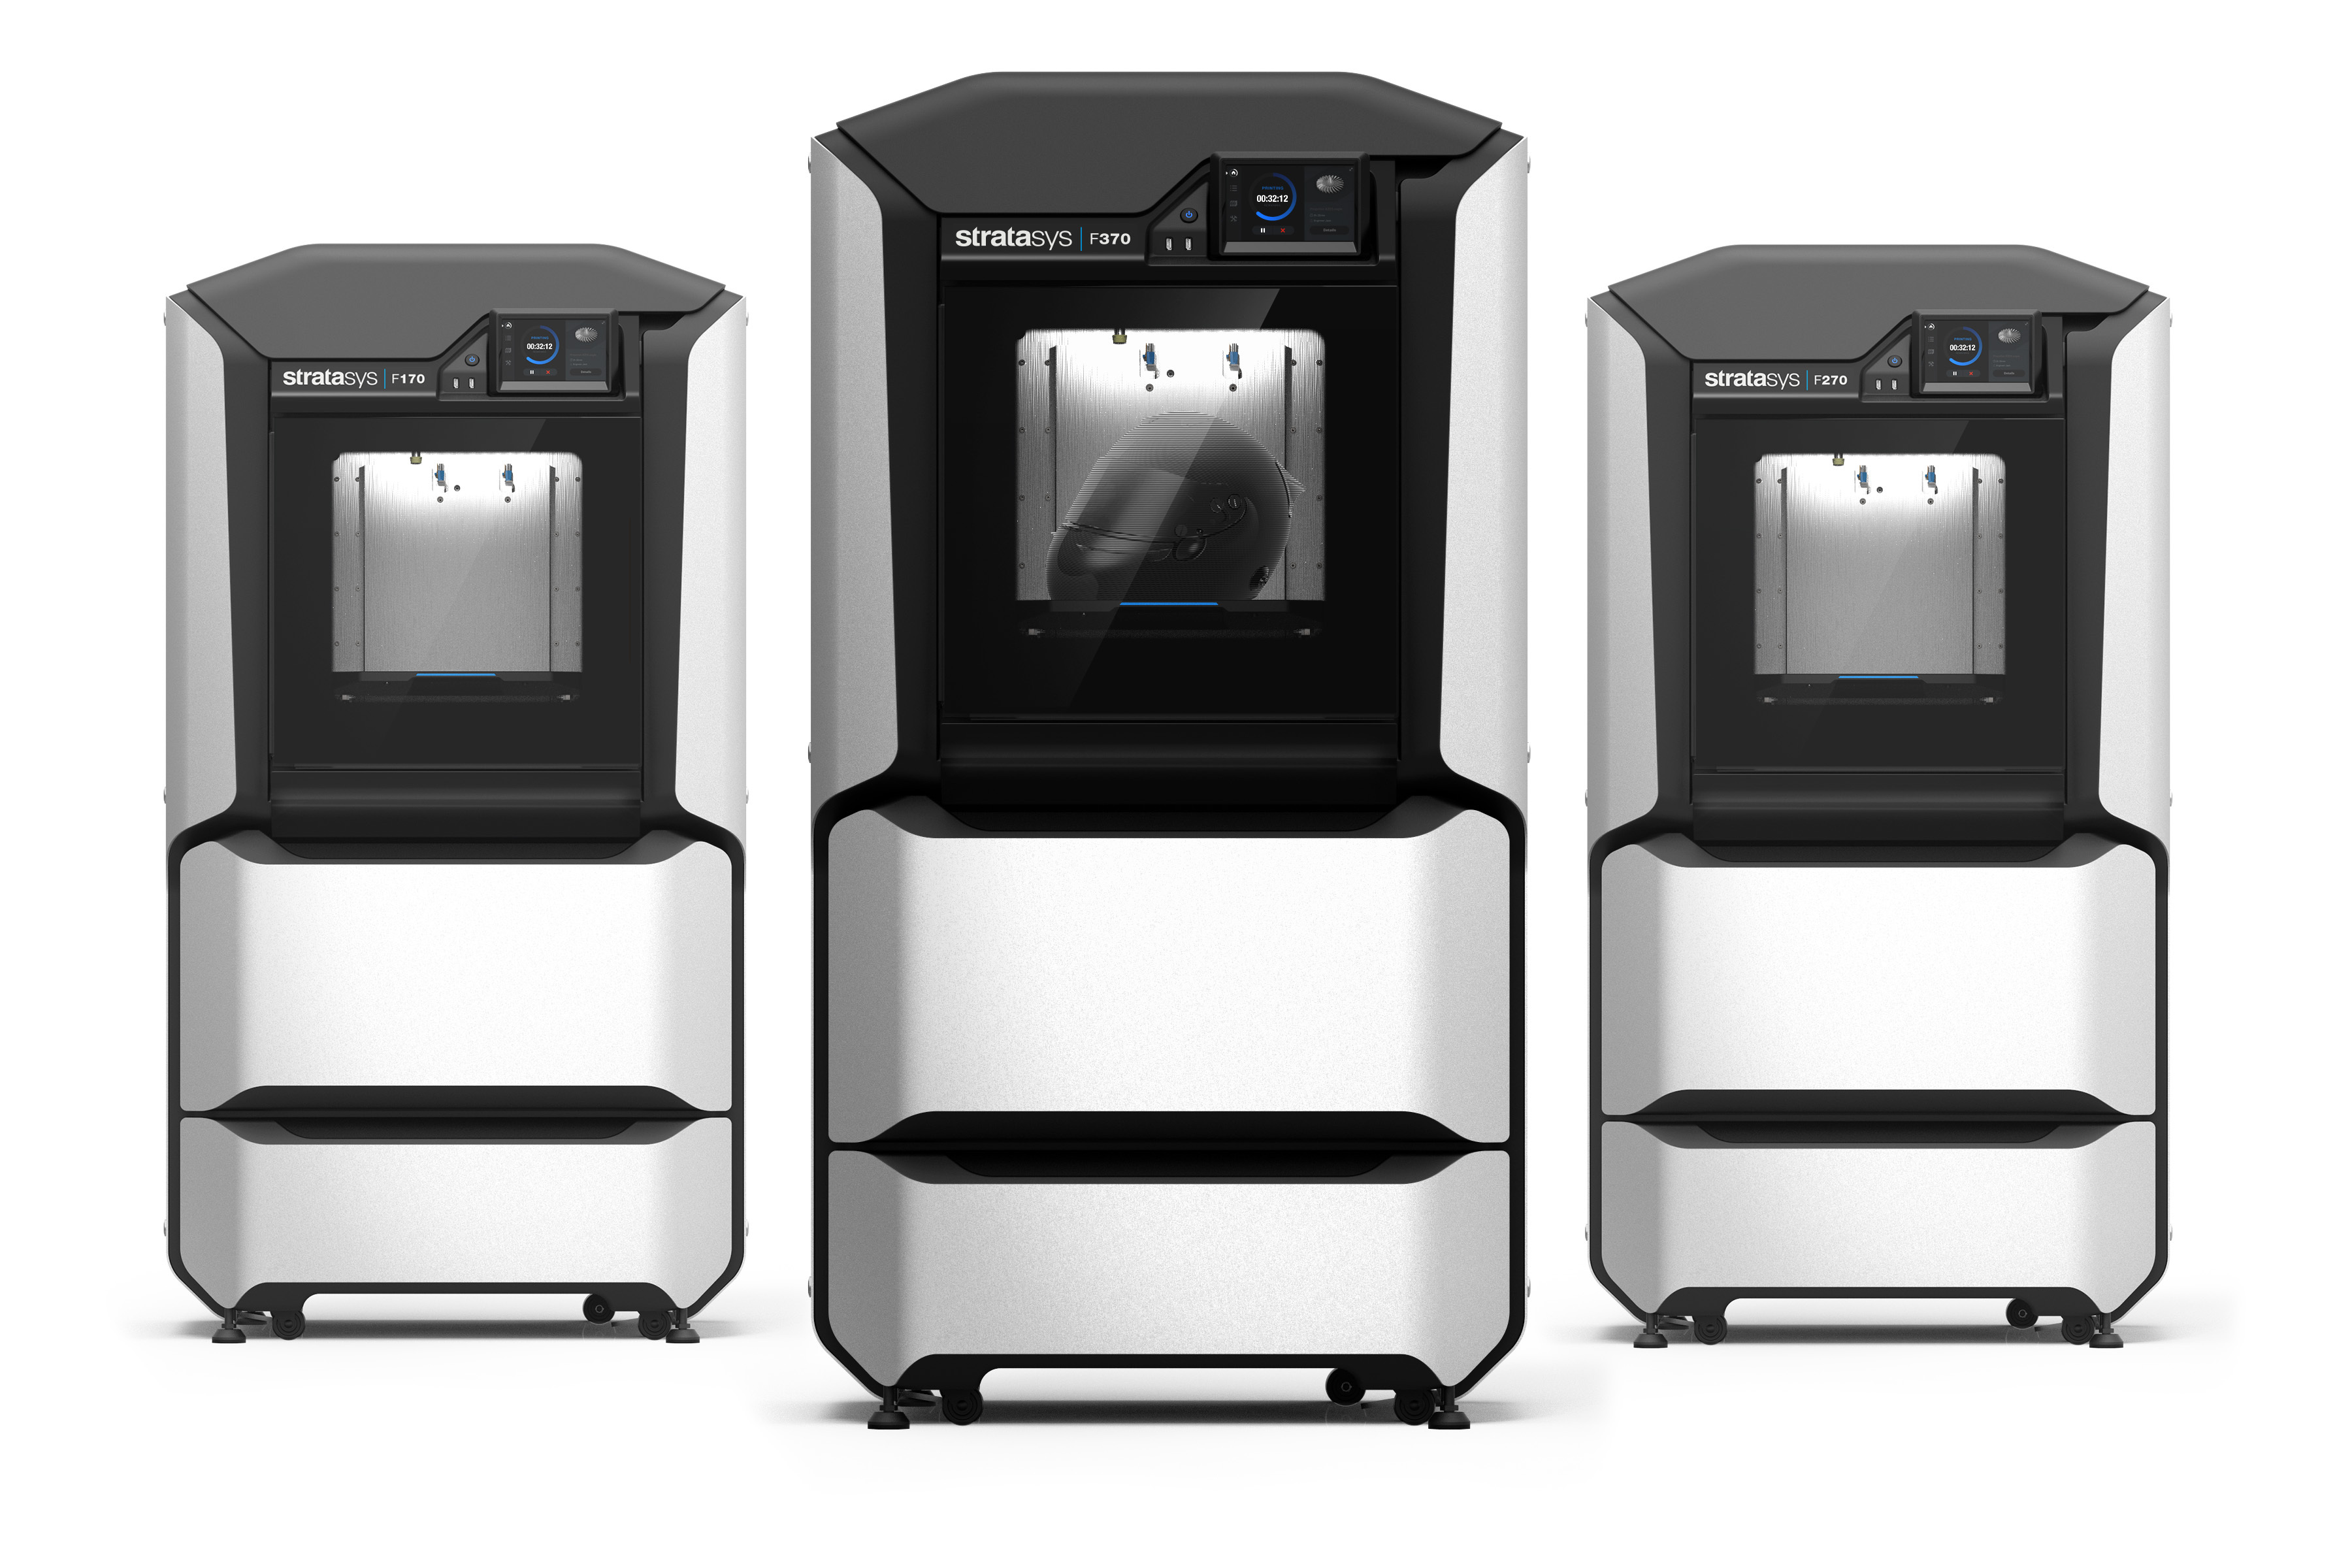 The new Stratasys F123 Series combines an enhanced user experience with engineering-grade quality to address the end-to-end rapid prototyping workflow. (Photo: Business Wire)